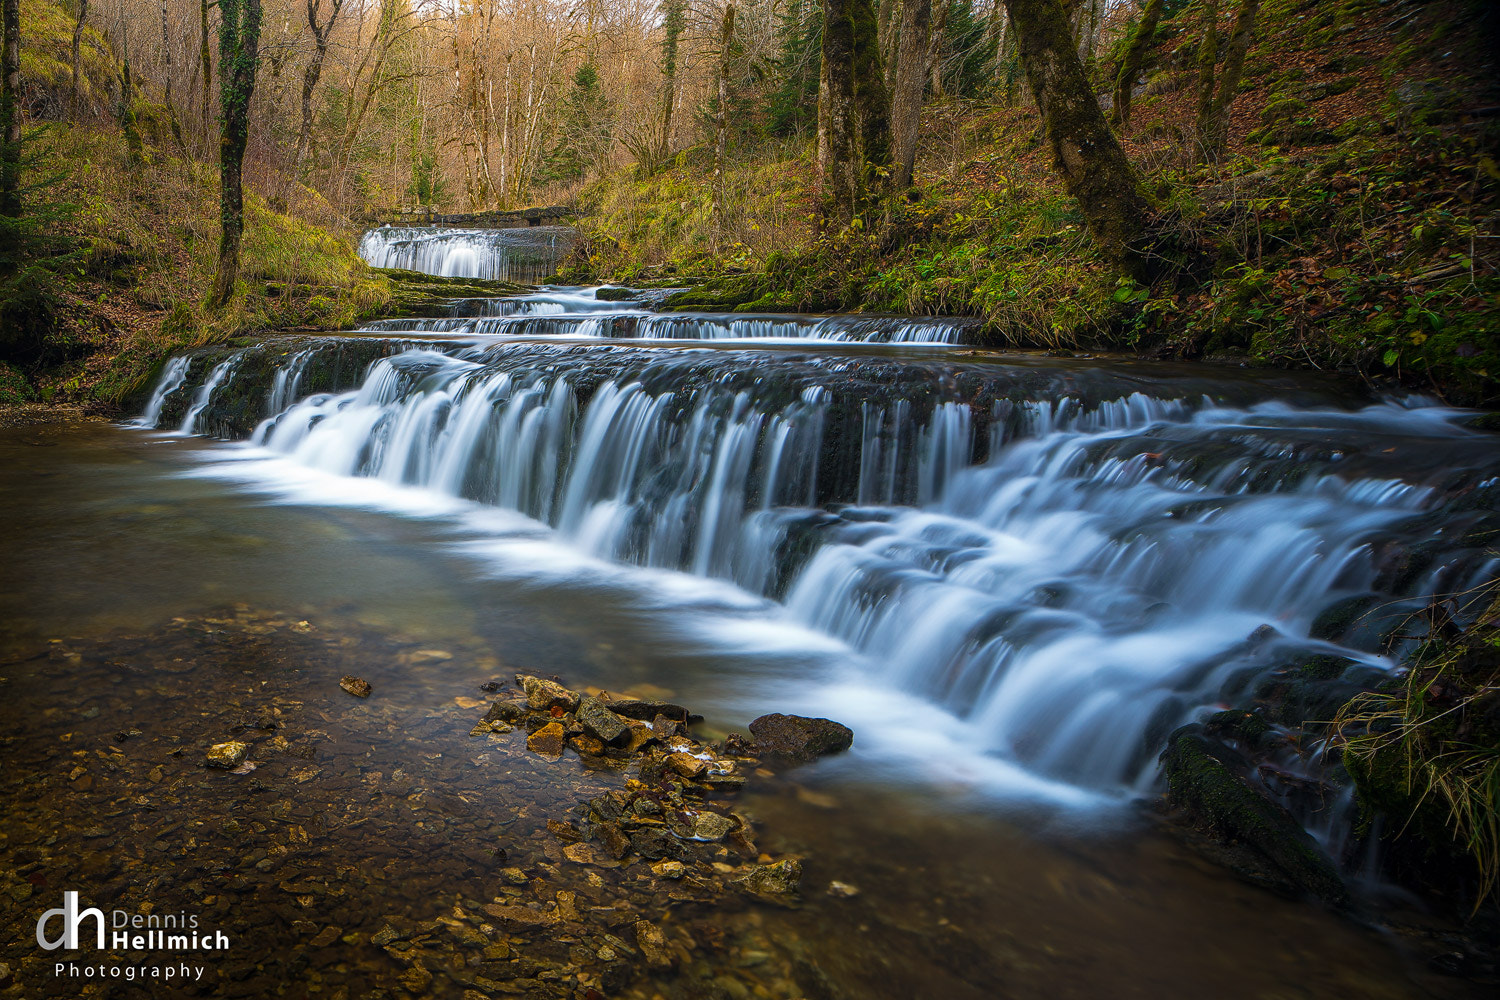 Photograph Cascades by Dennis Hellmich on 500px